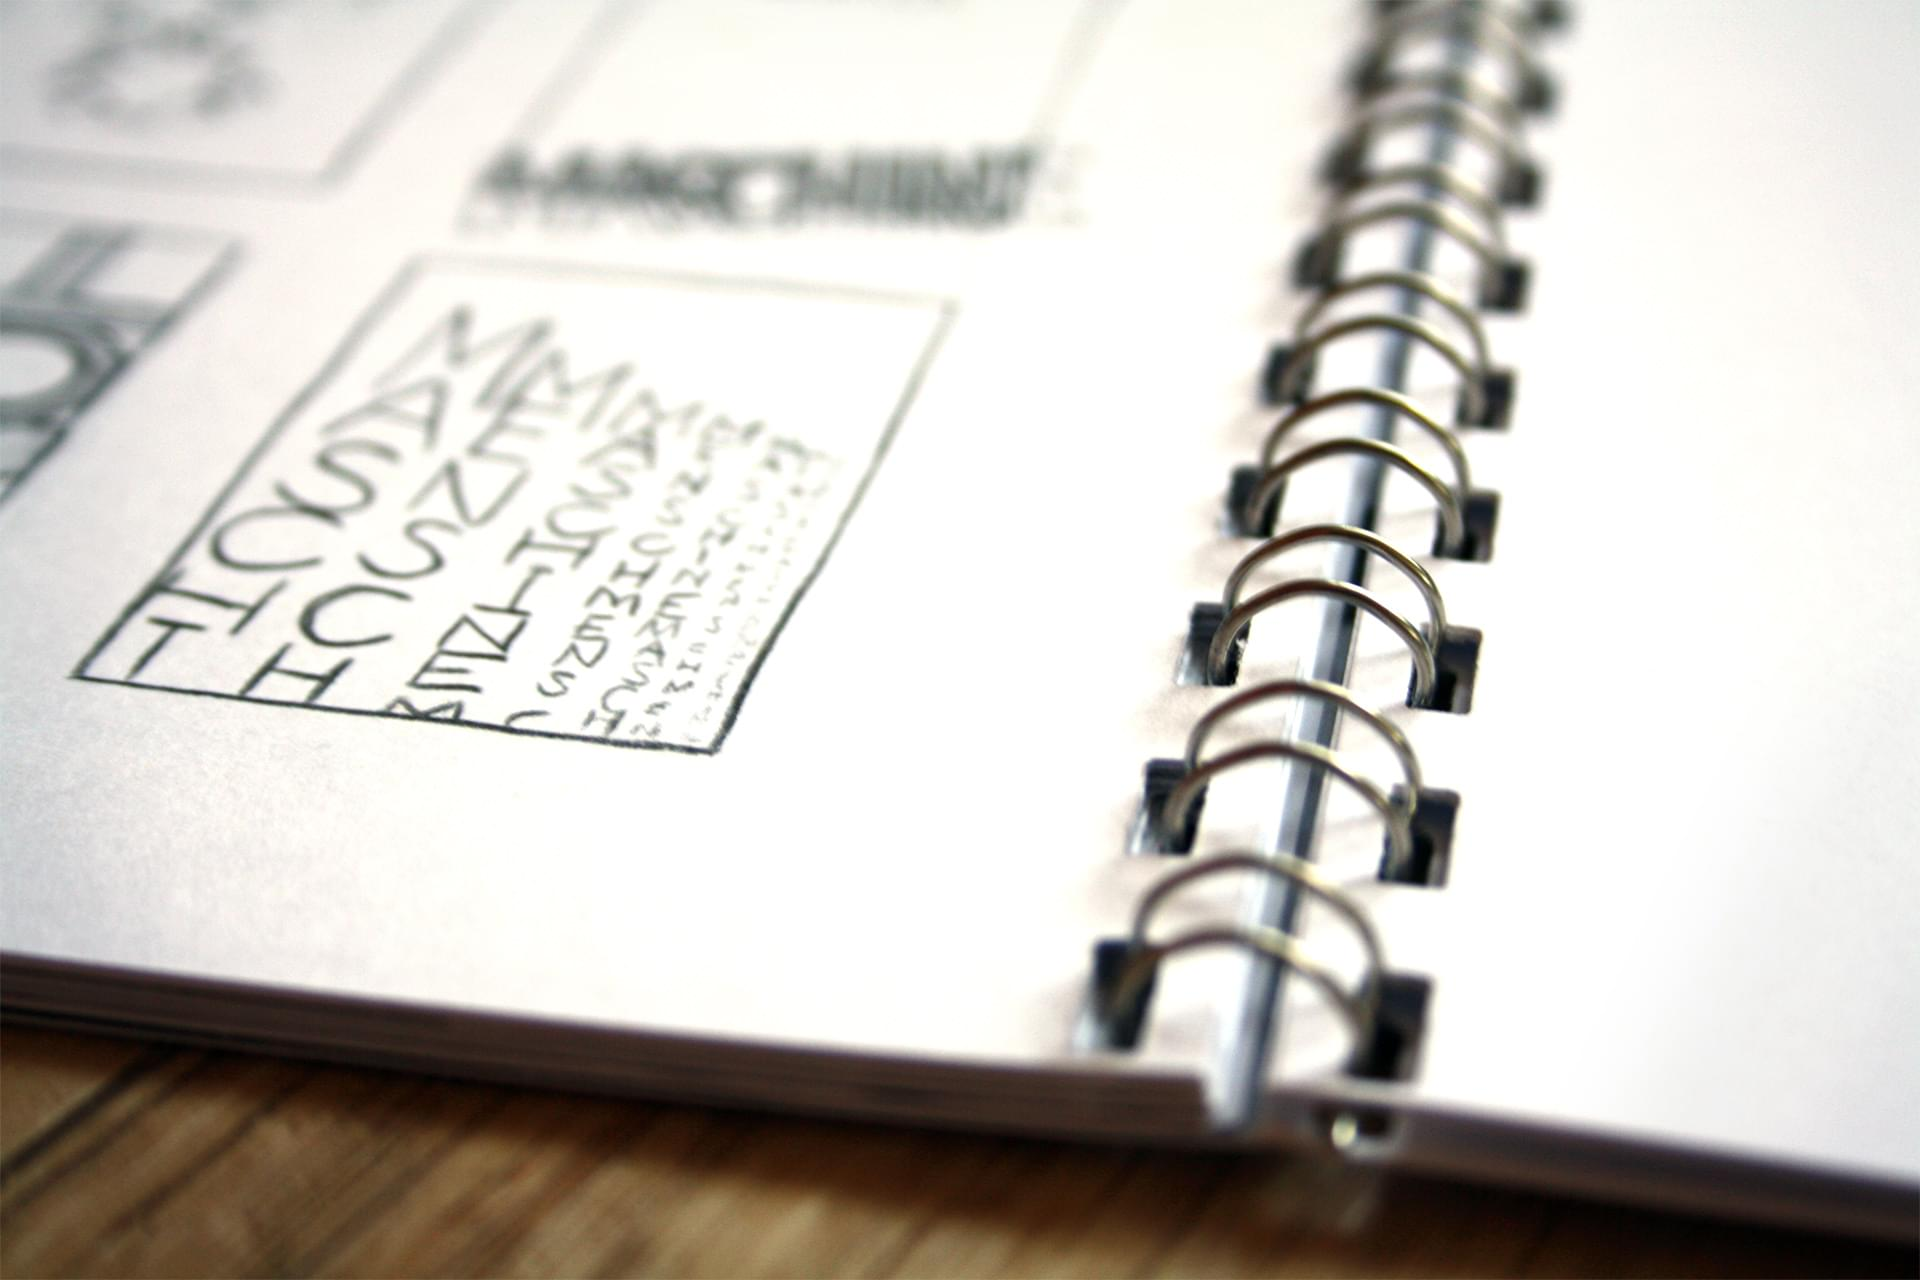 A close-up of the booklet, with the spiral binding clearly visible.